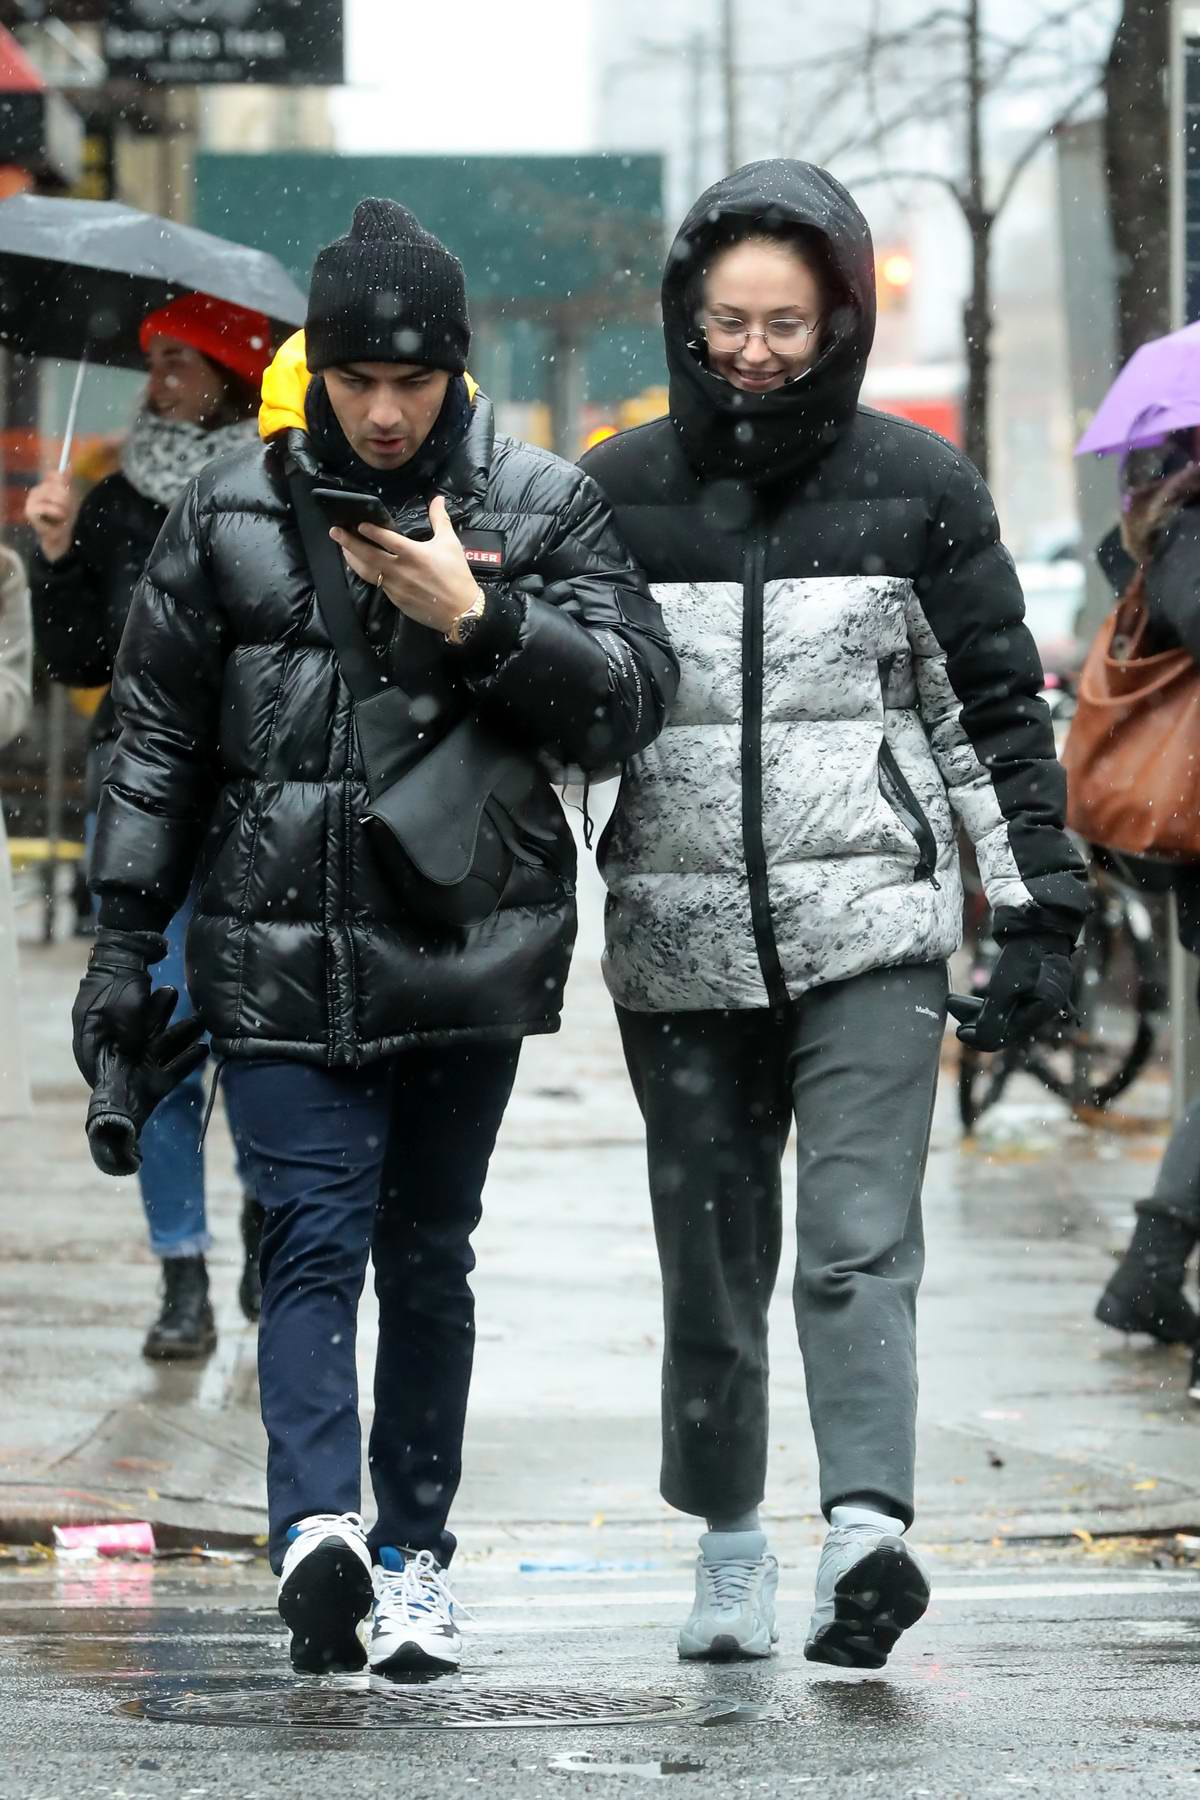 Sophie Turner and Joe Jonas brave the cold weather as they step out on a snowy day in New York City